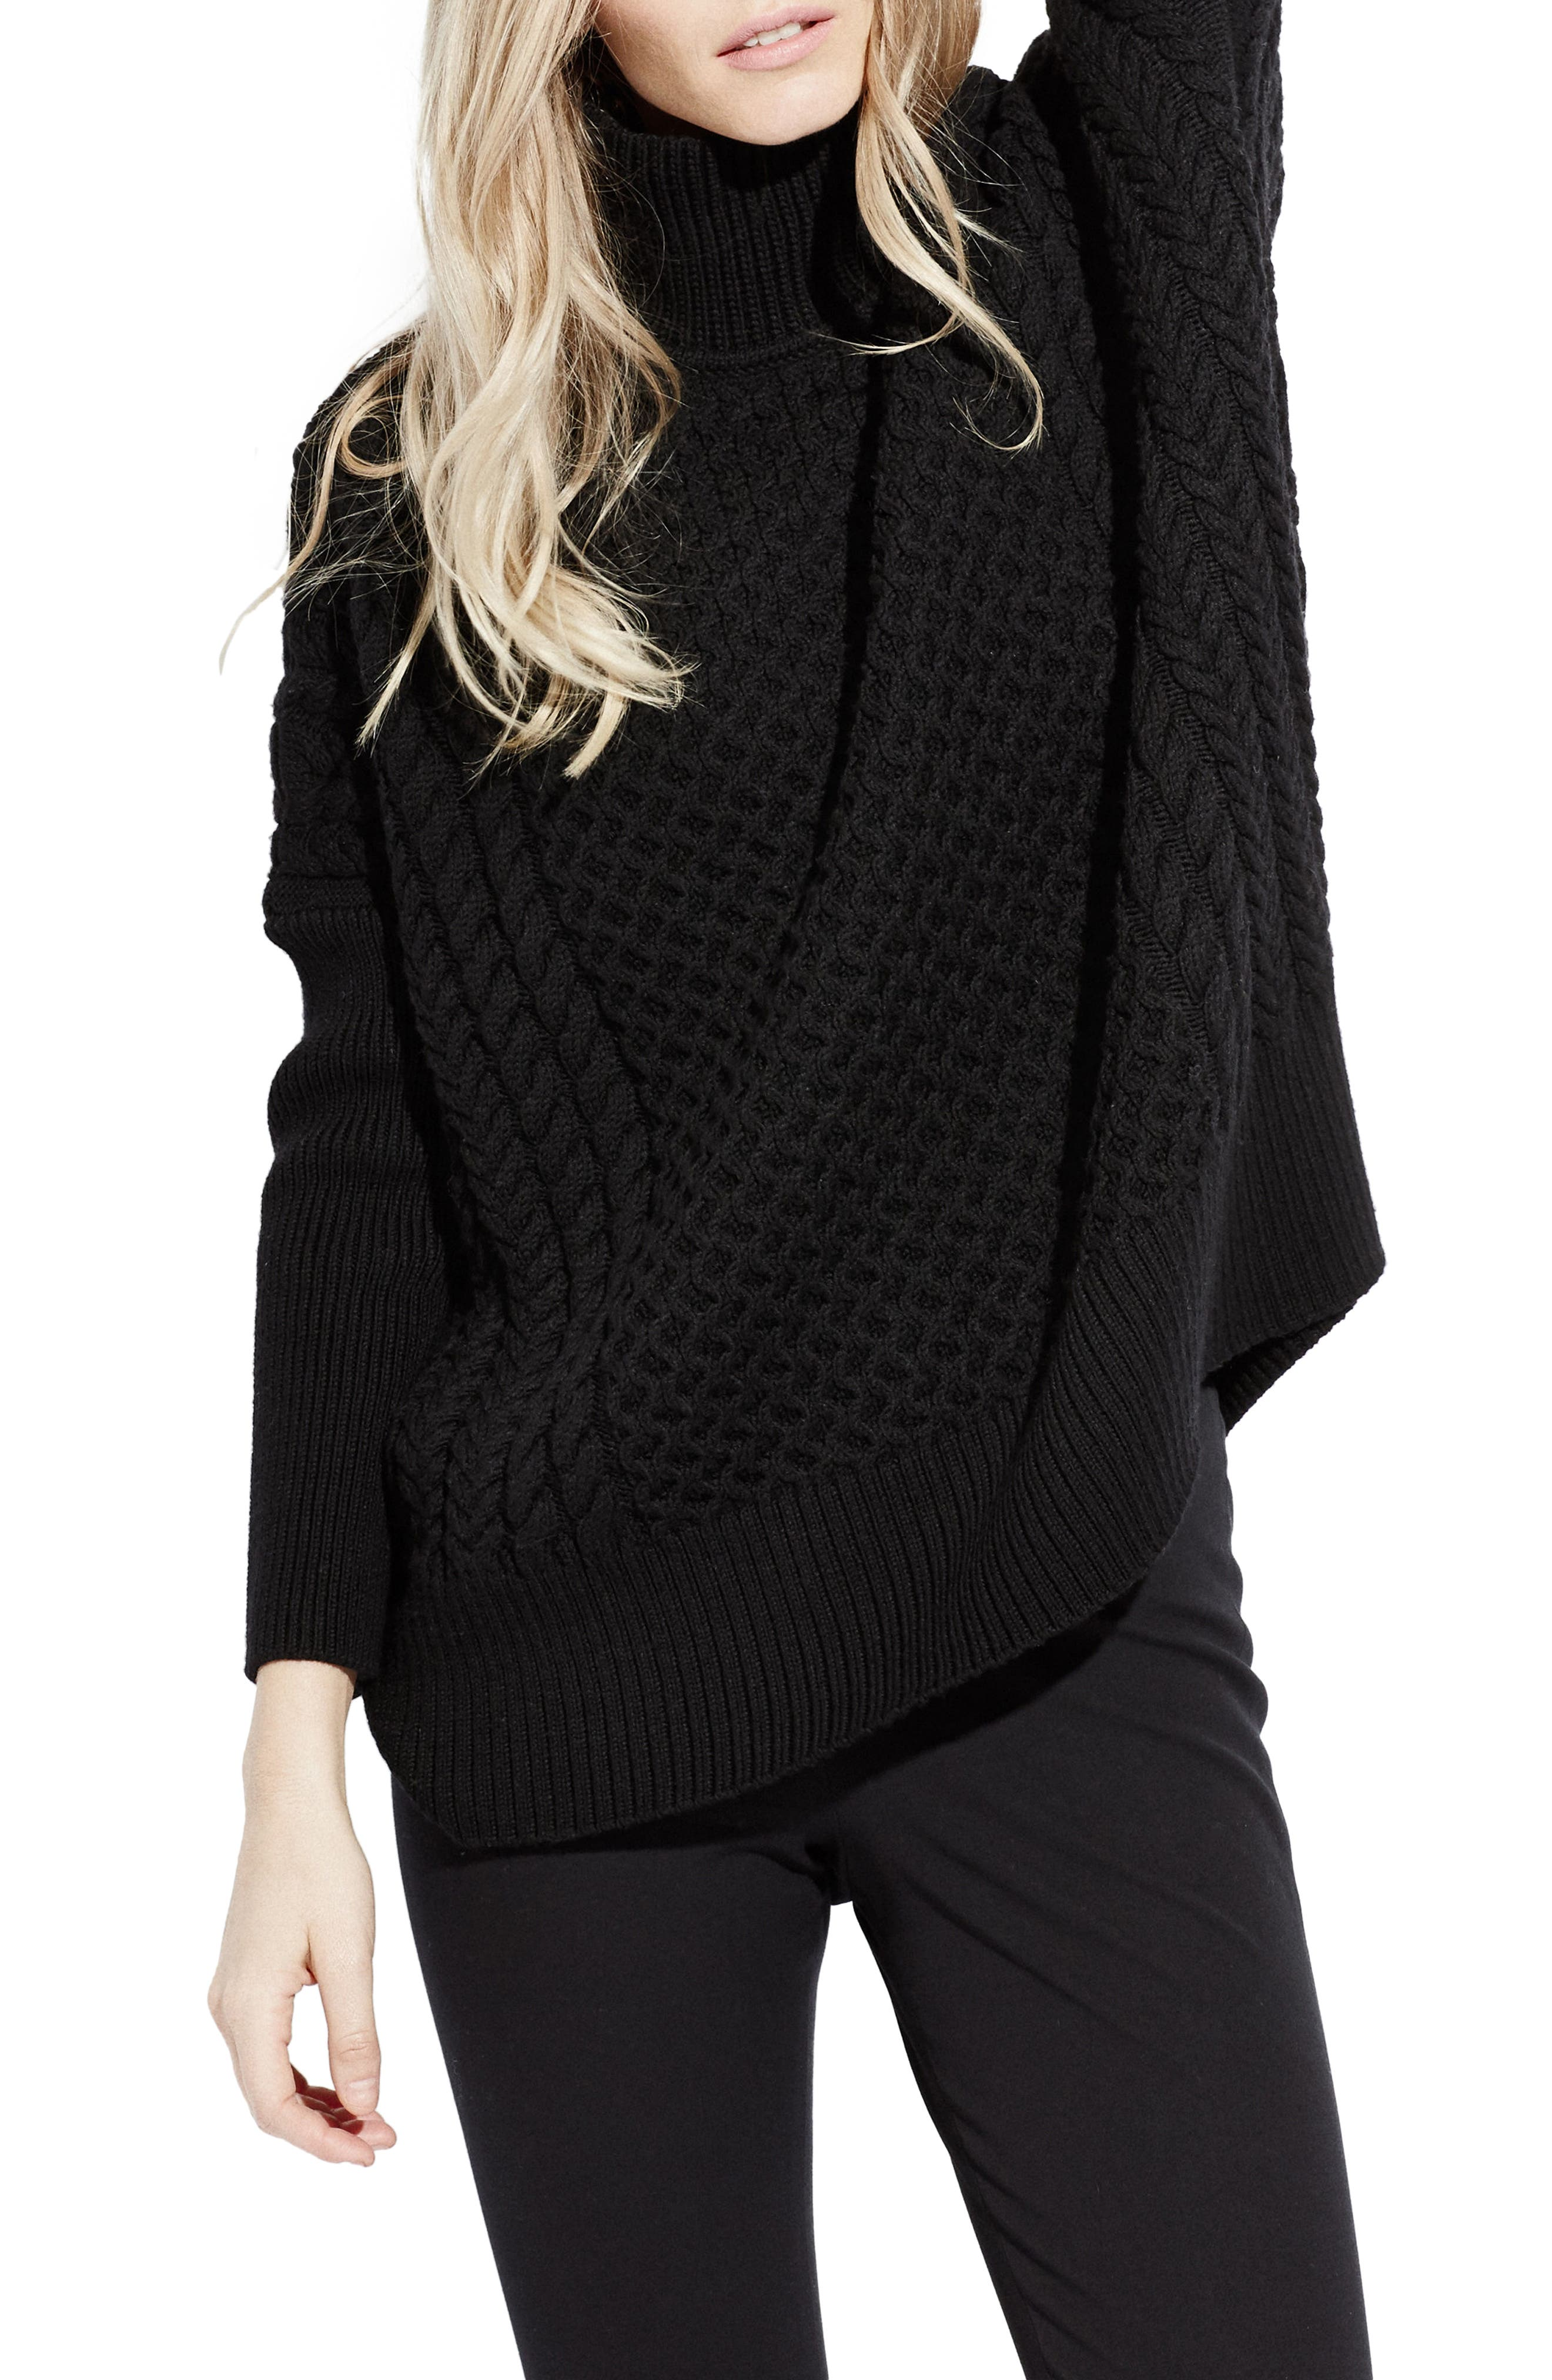 AYR Le Square Turtleneck Sweater